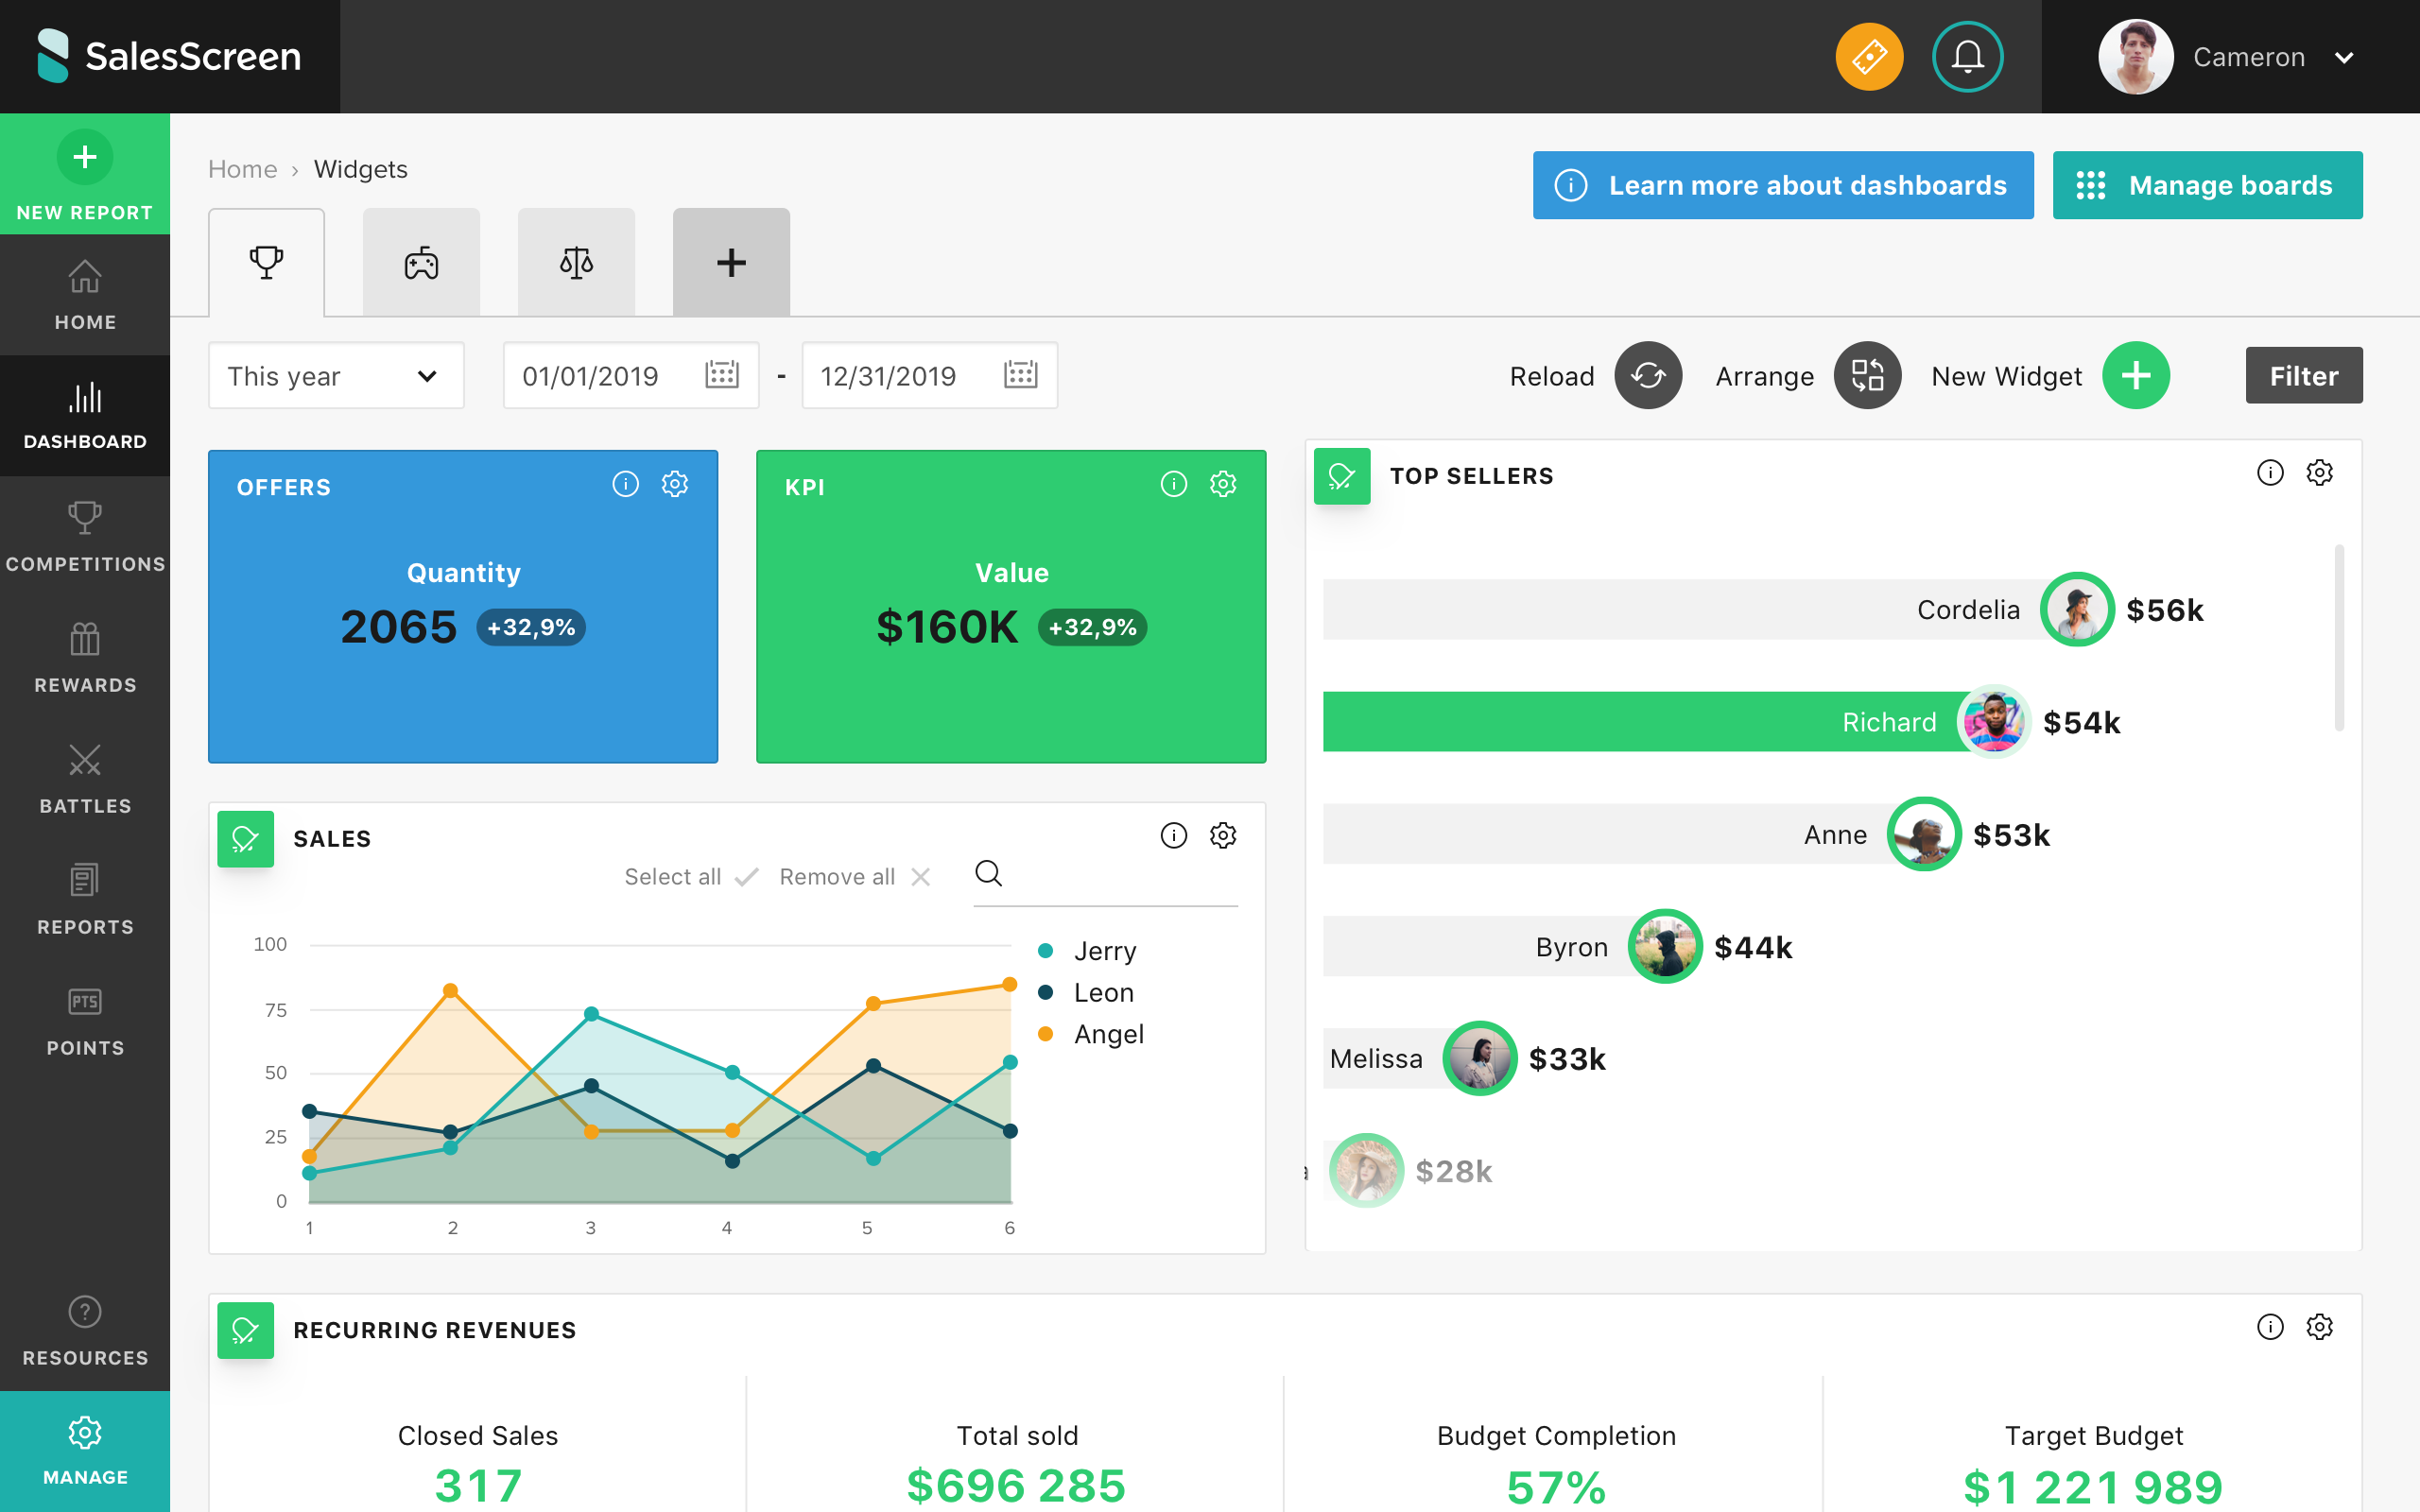 SalesScreen company dashboard